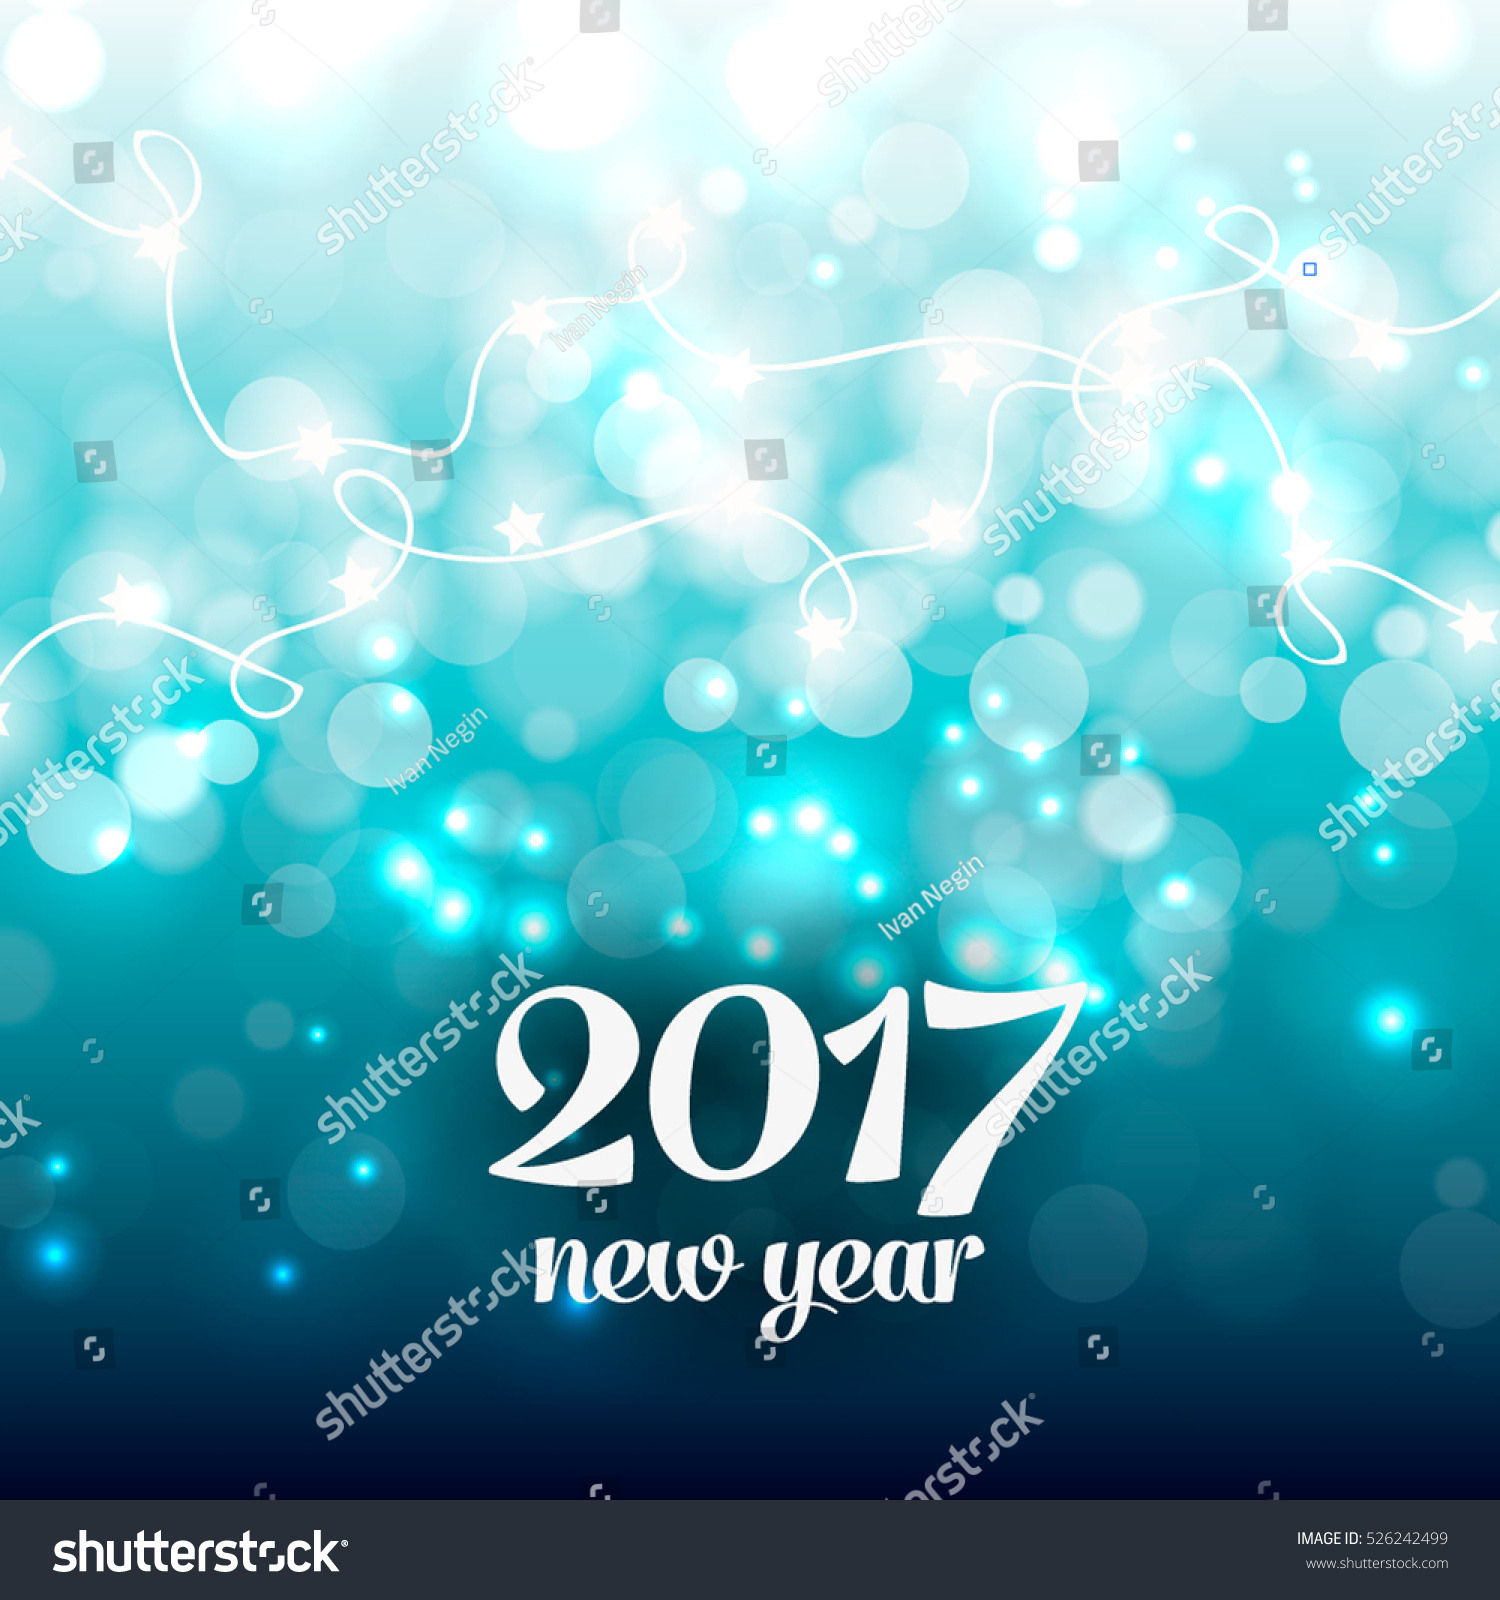 happy new year party invitation card party poster holiday design template snowflake lights glowing lights